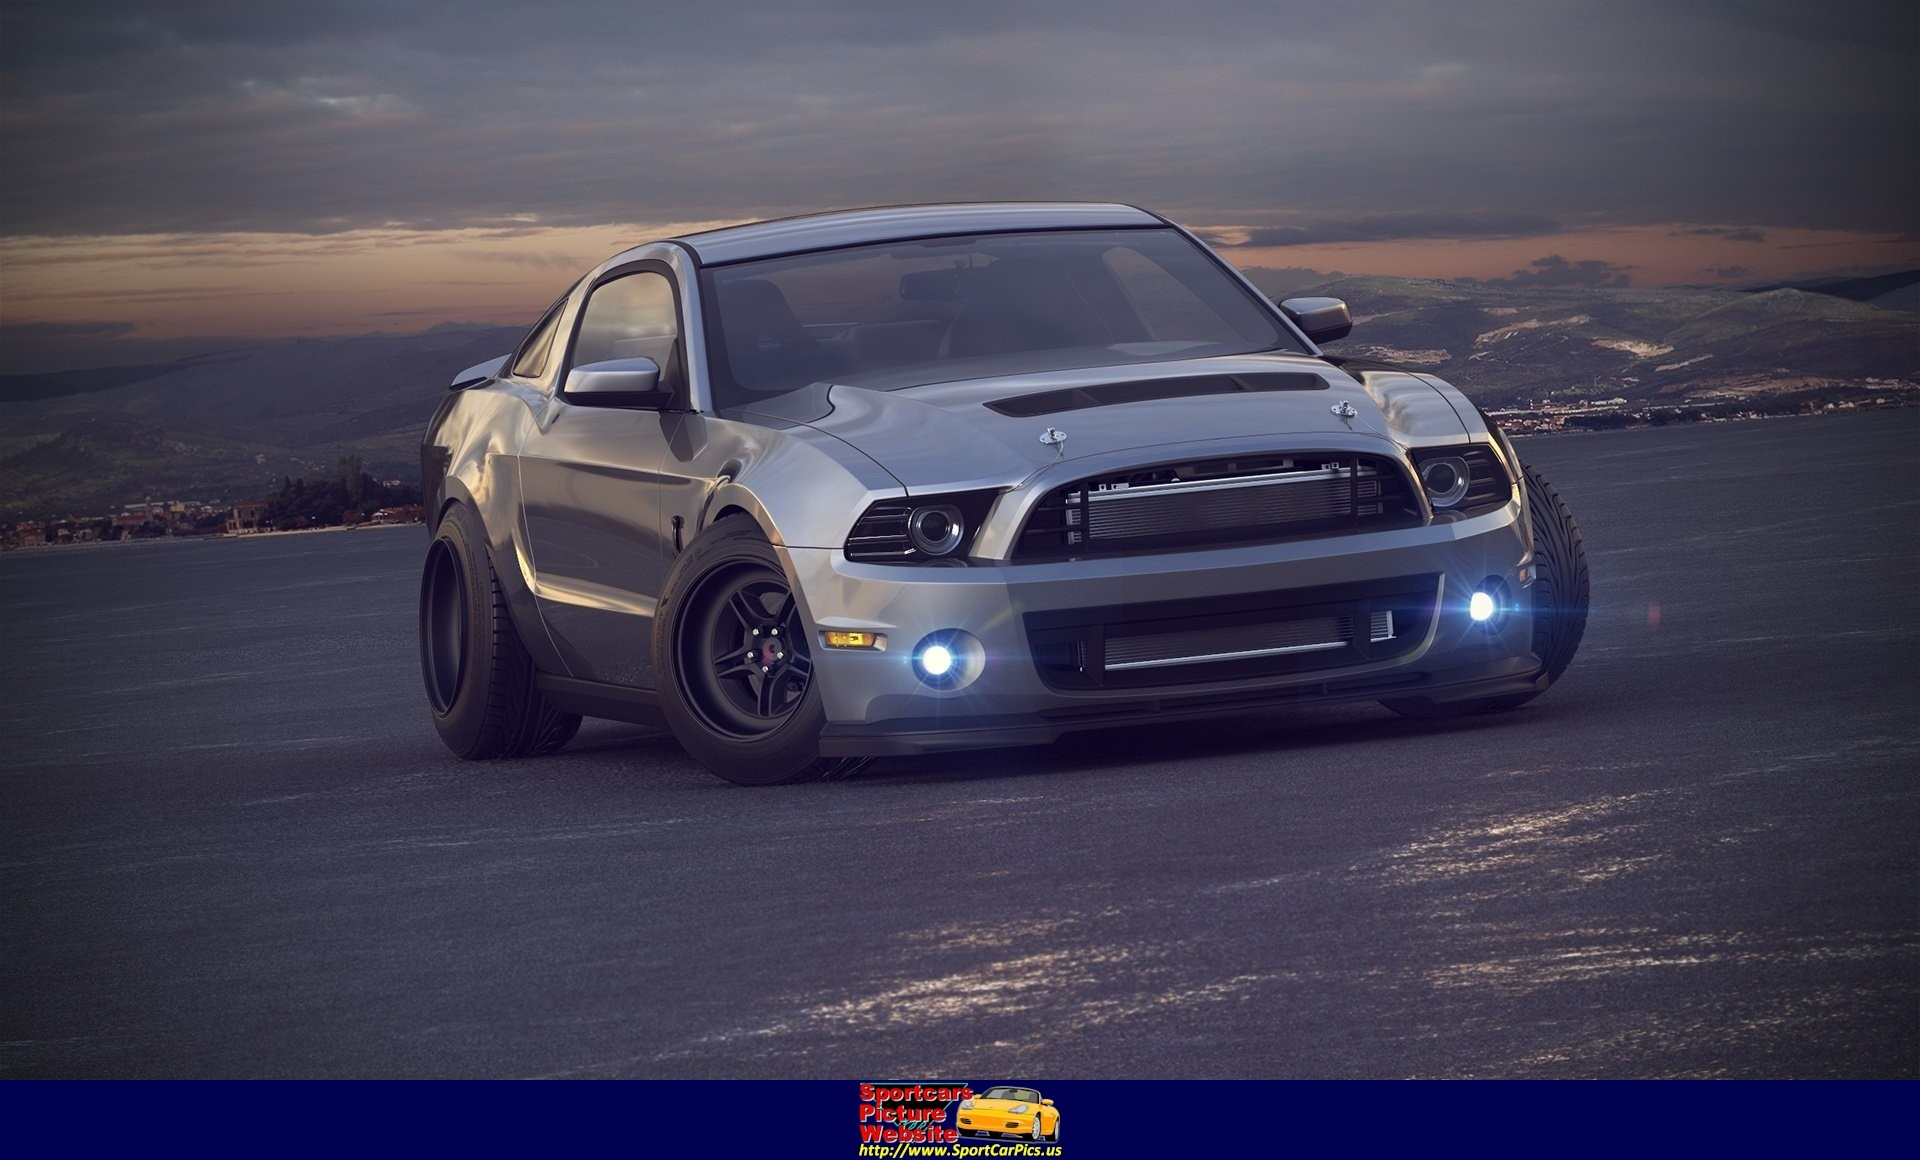 Ford Mustang - ID: 224845